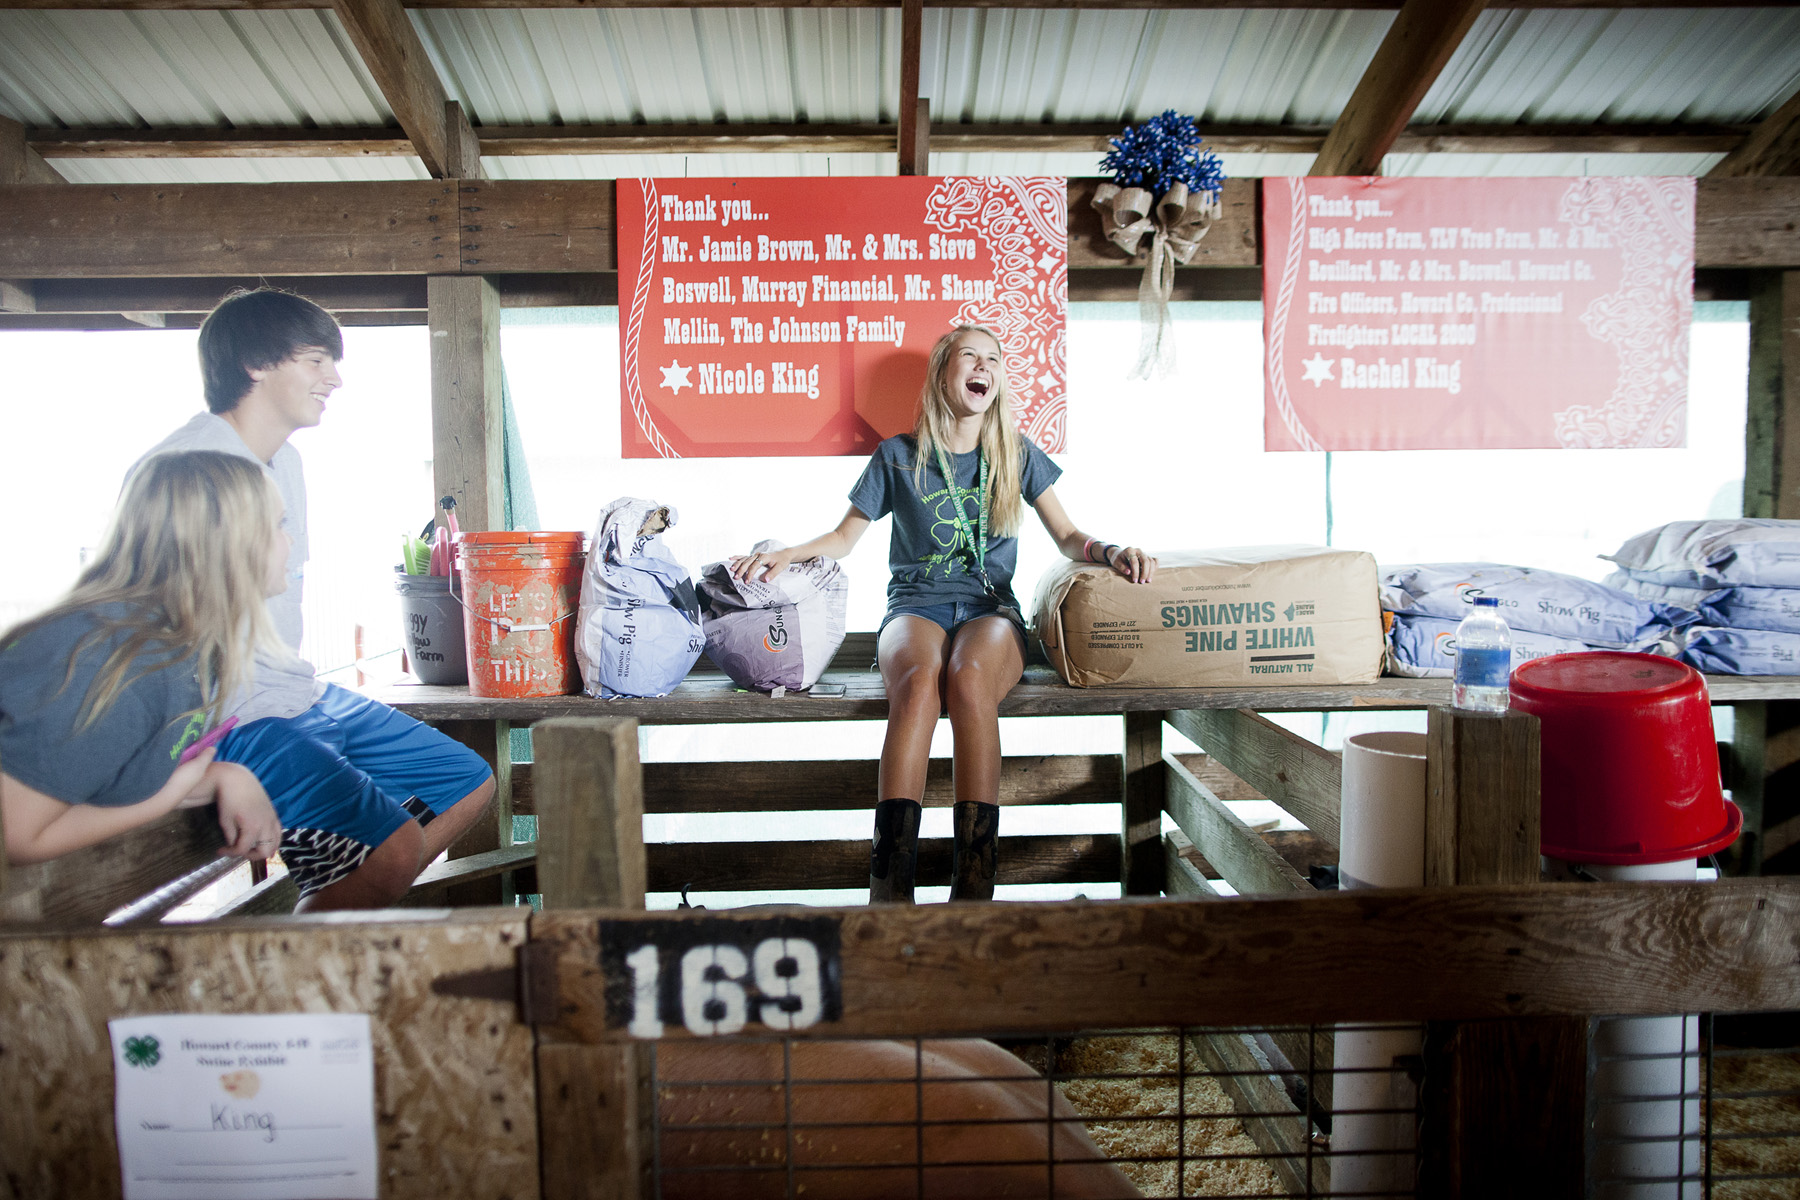 A day in the life of a 4-H family at the Howard County Fair